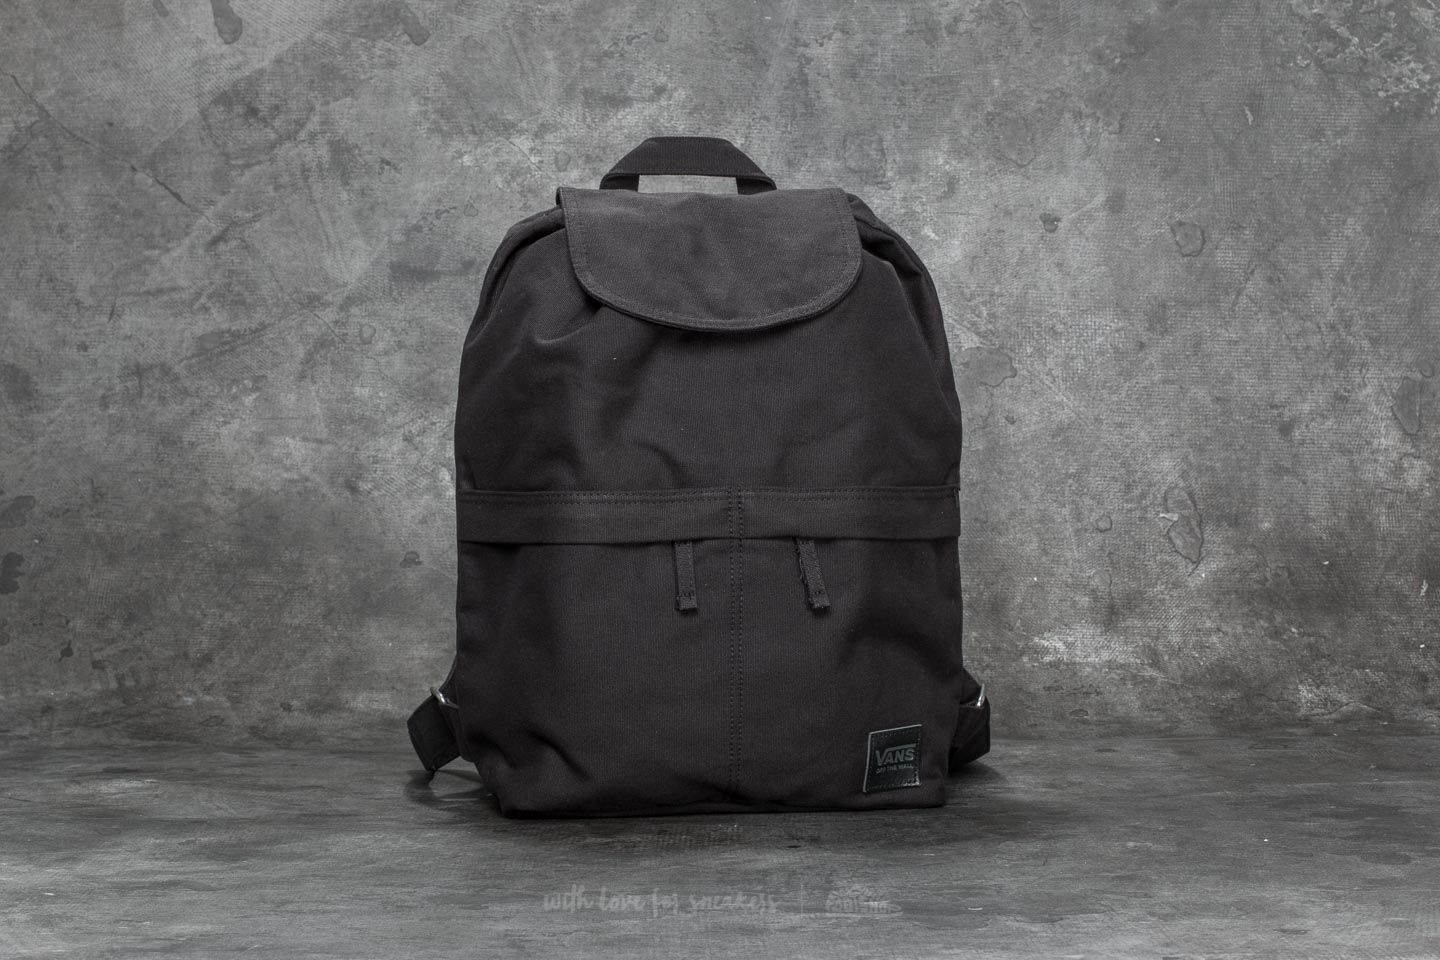 Vans Lakeside Backpack Black  dd9a5a406e